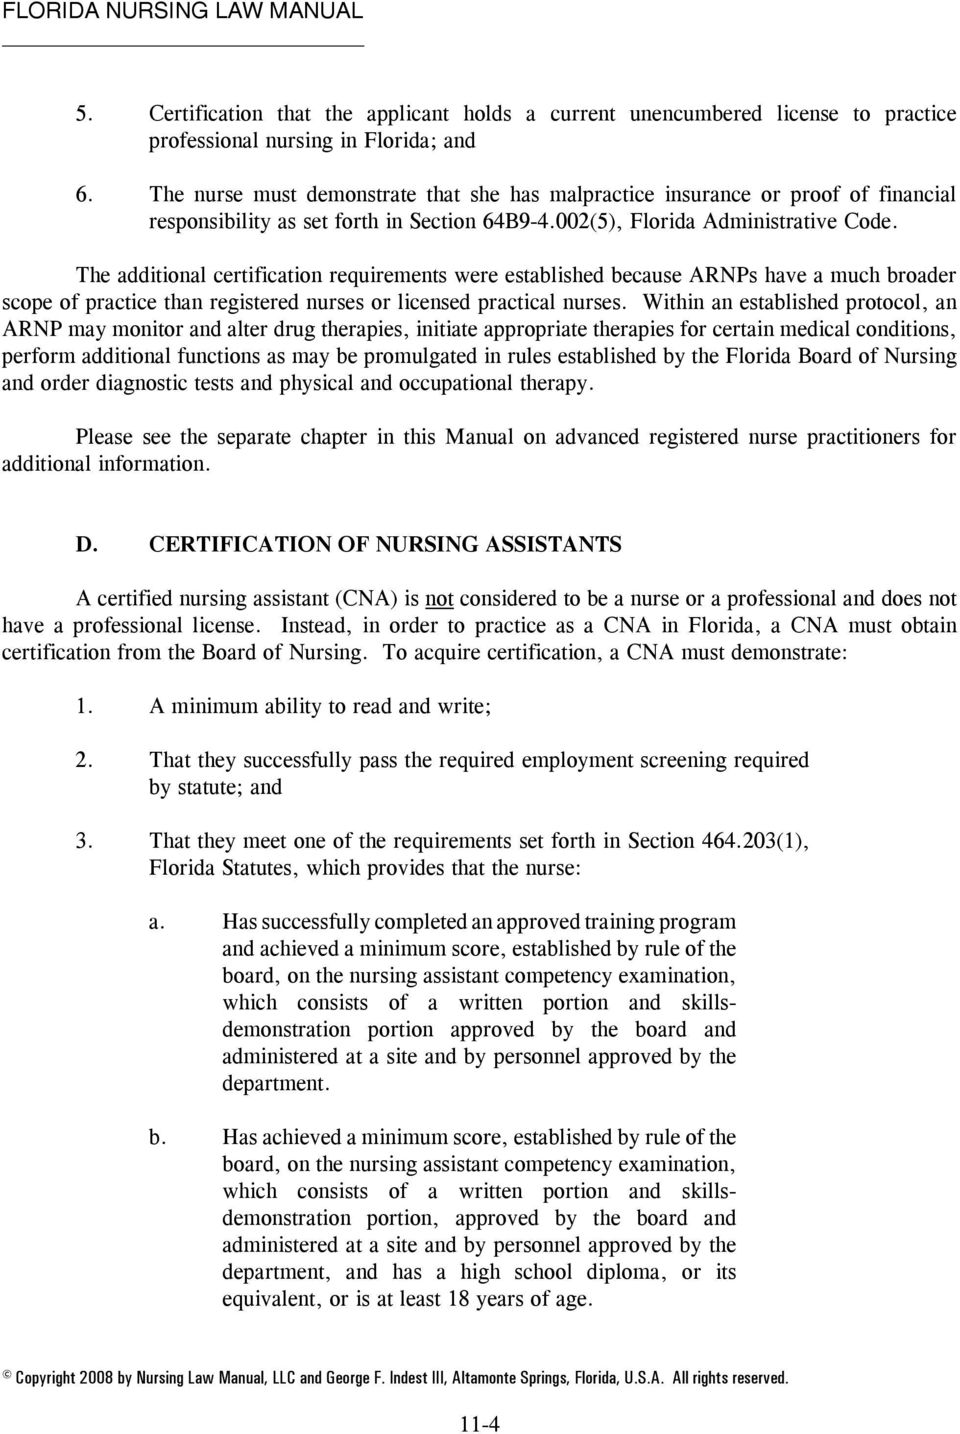 The additional certification requirements were established because ARNPs have a much broader scope of practice than registered nurses or licensed practical nurses.